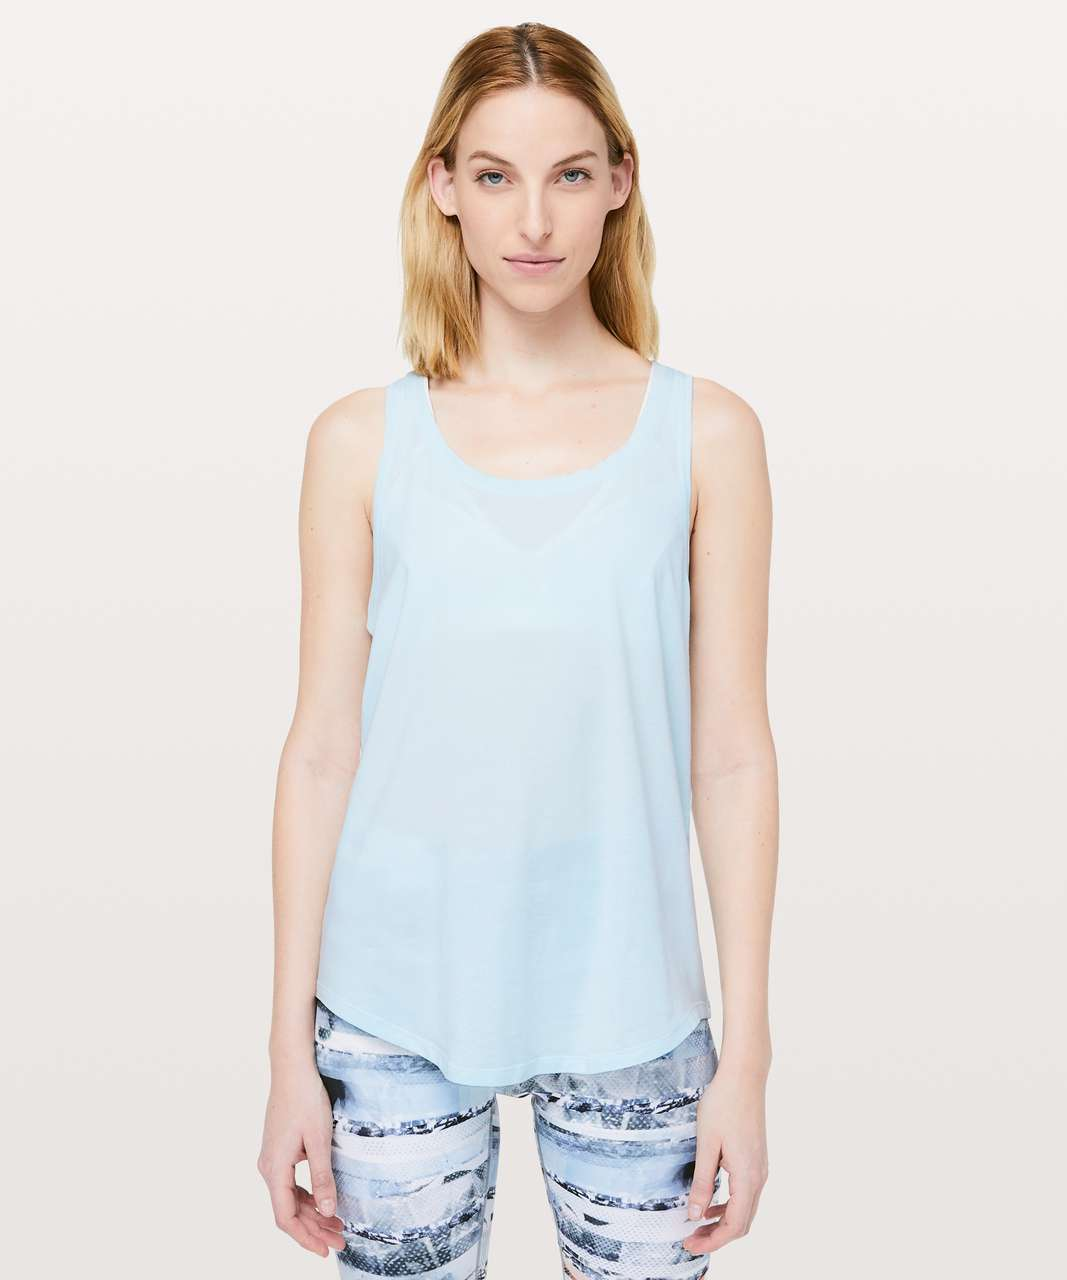 Lululemon Love Tank *Pleated - Sheer Blue